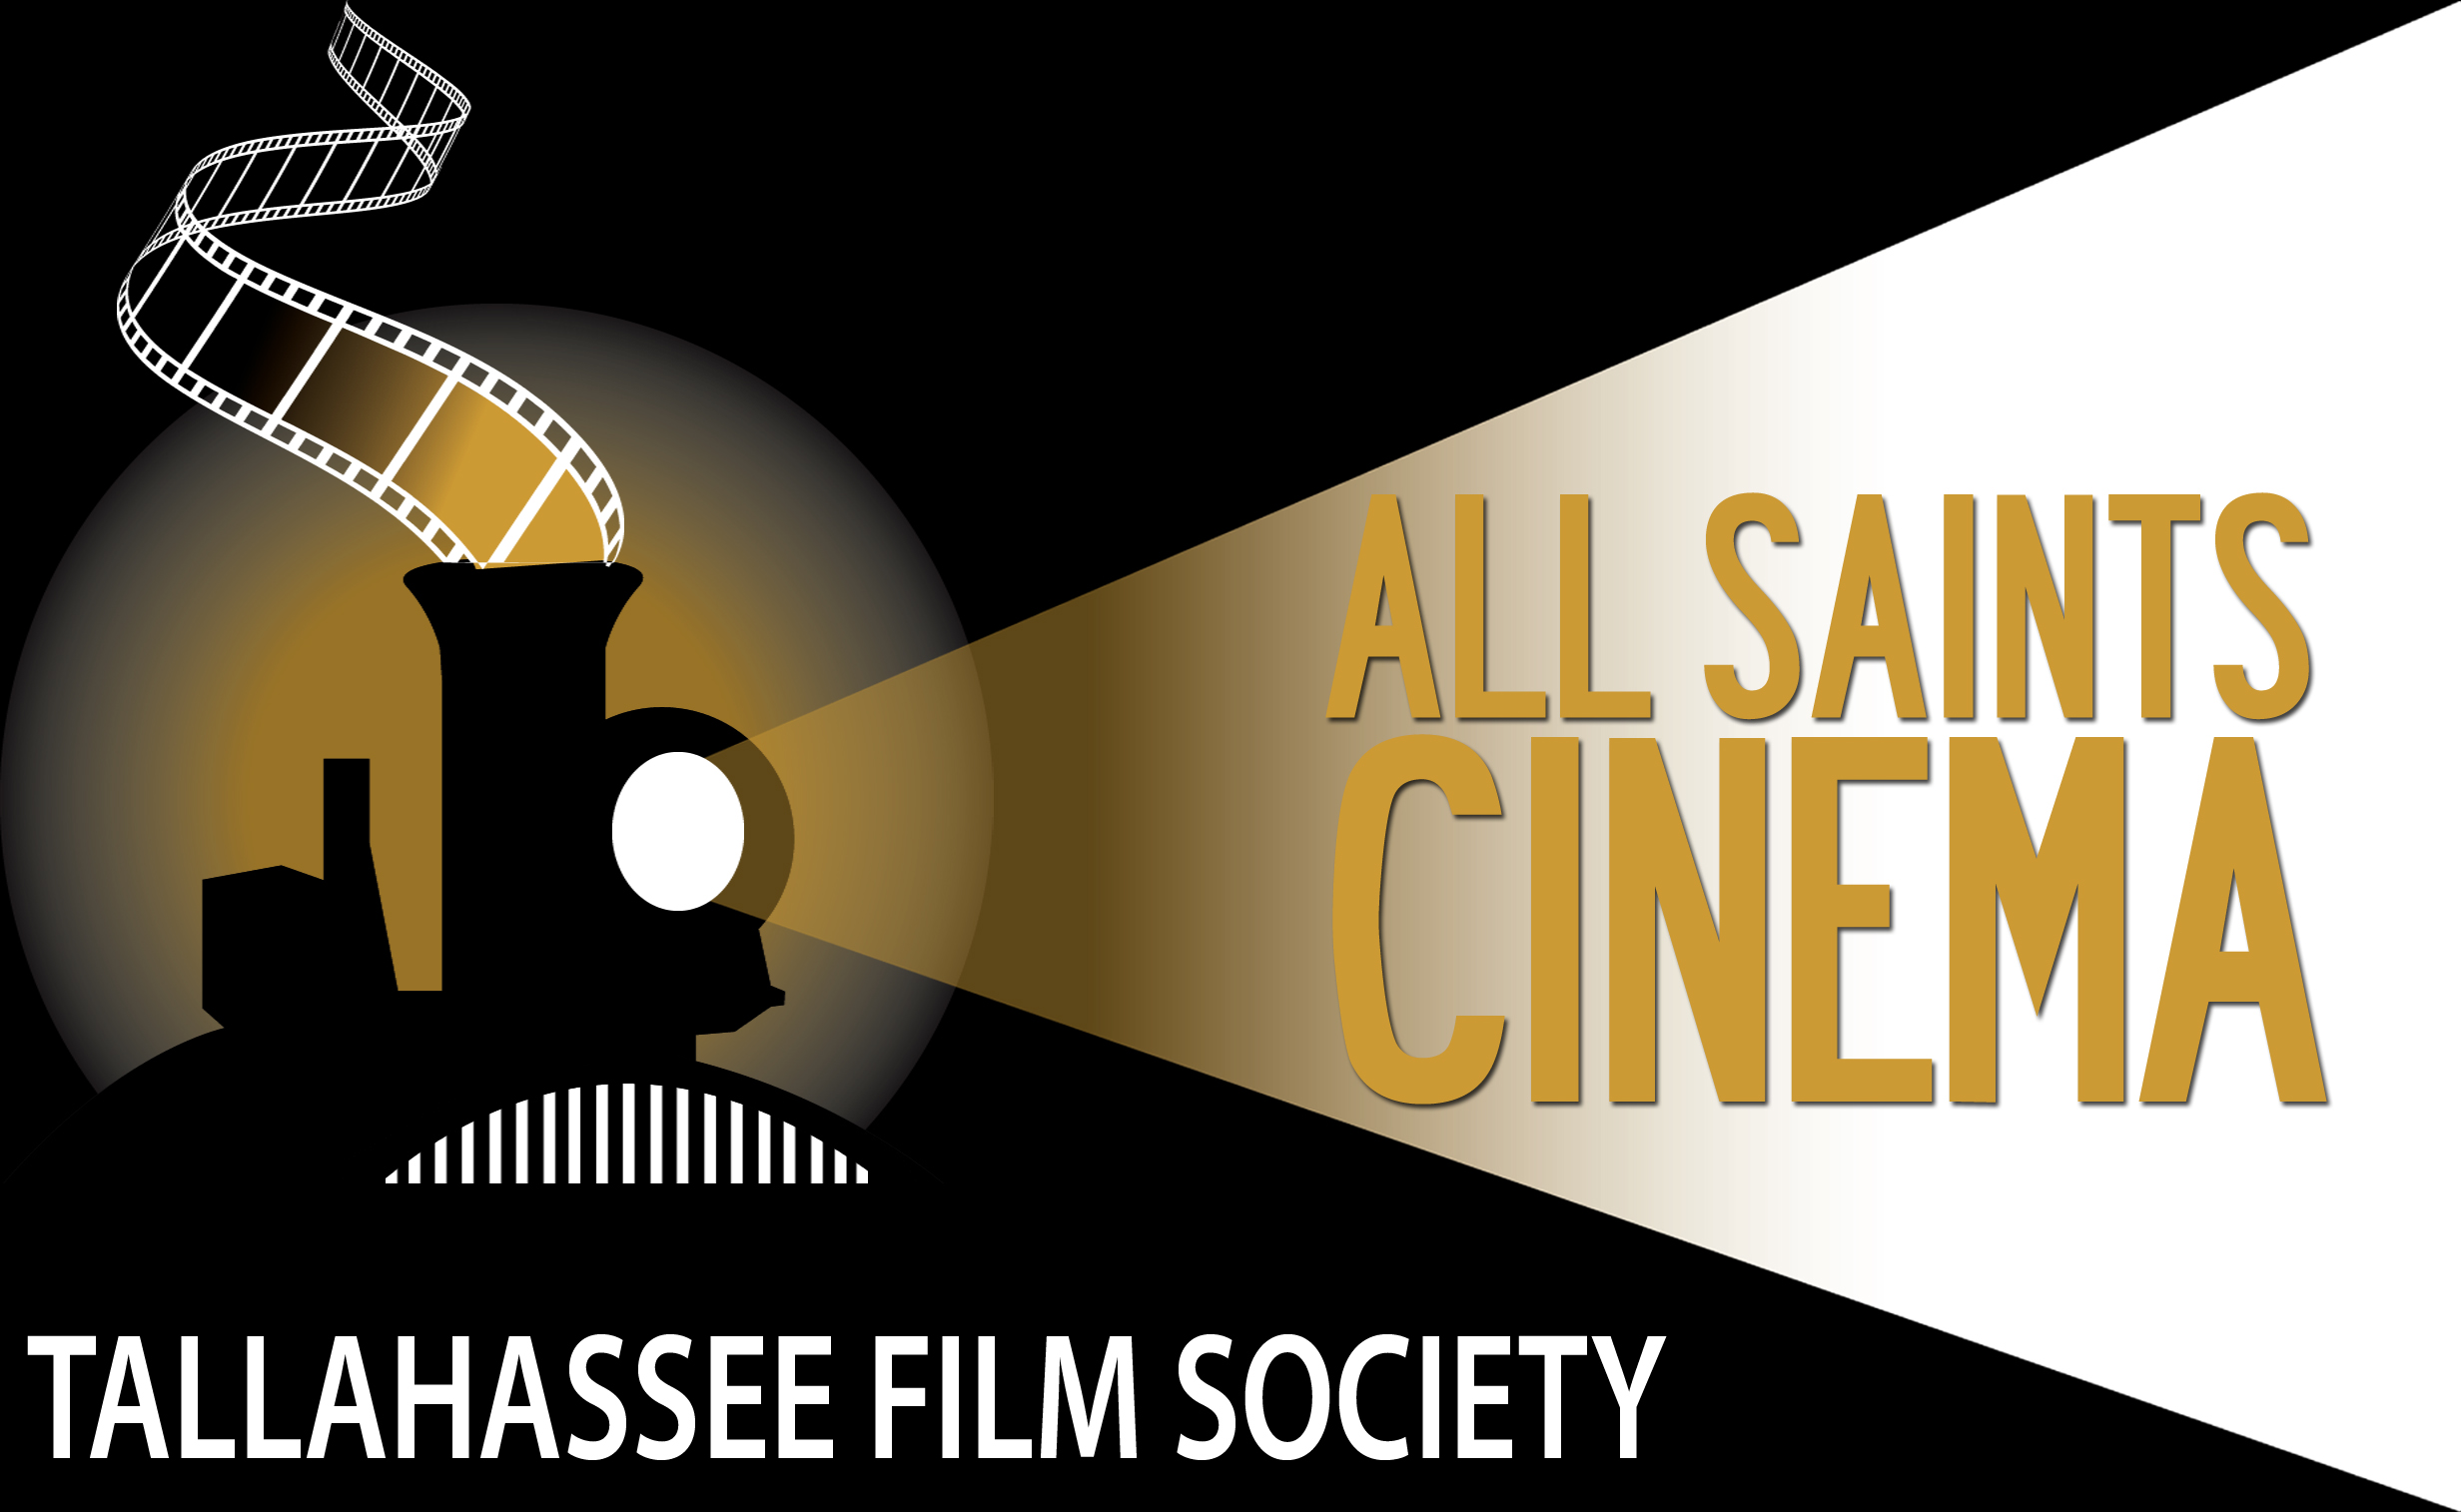 All Saints Cinema logo